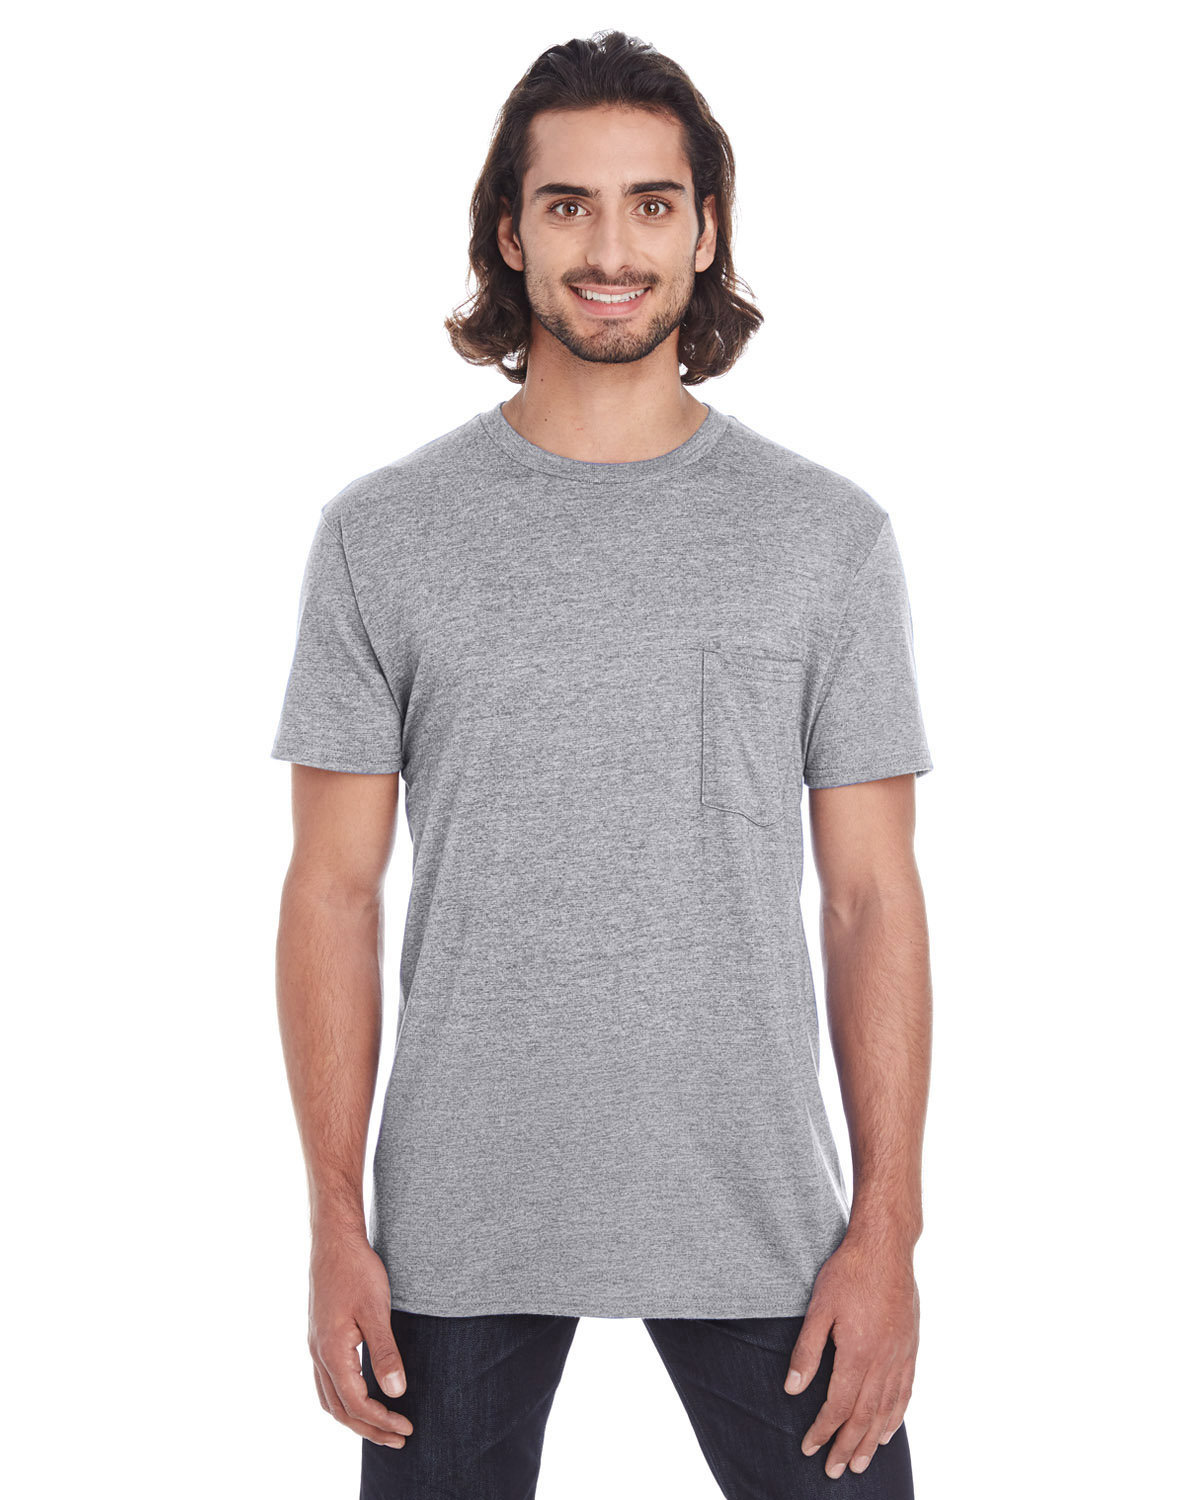 Anvil Adult Lightweight Pocket T-Shirt HEATHER GRAPHITE